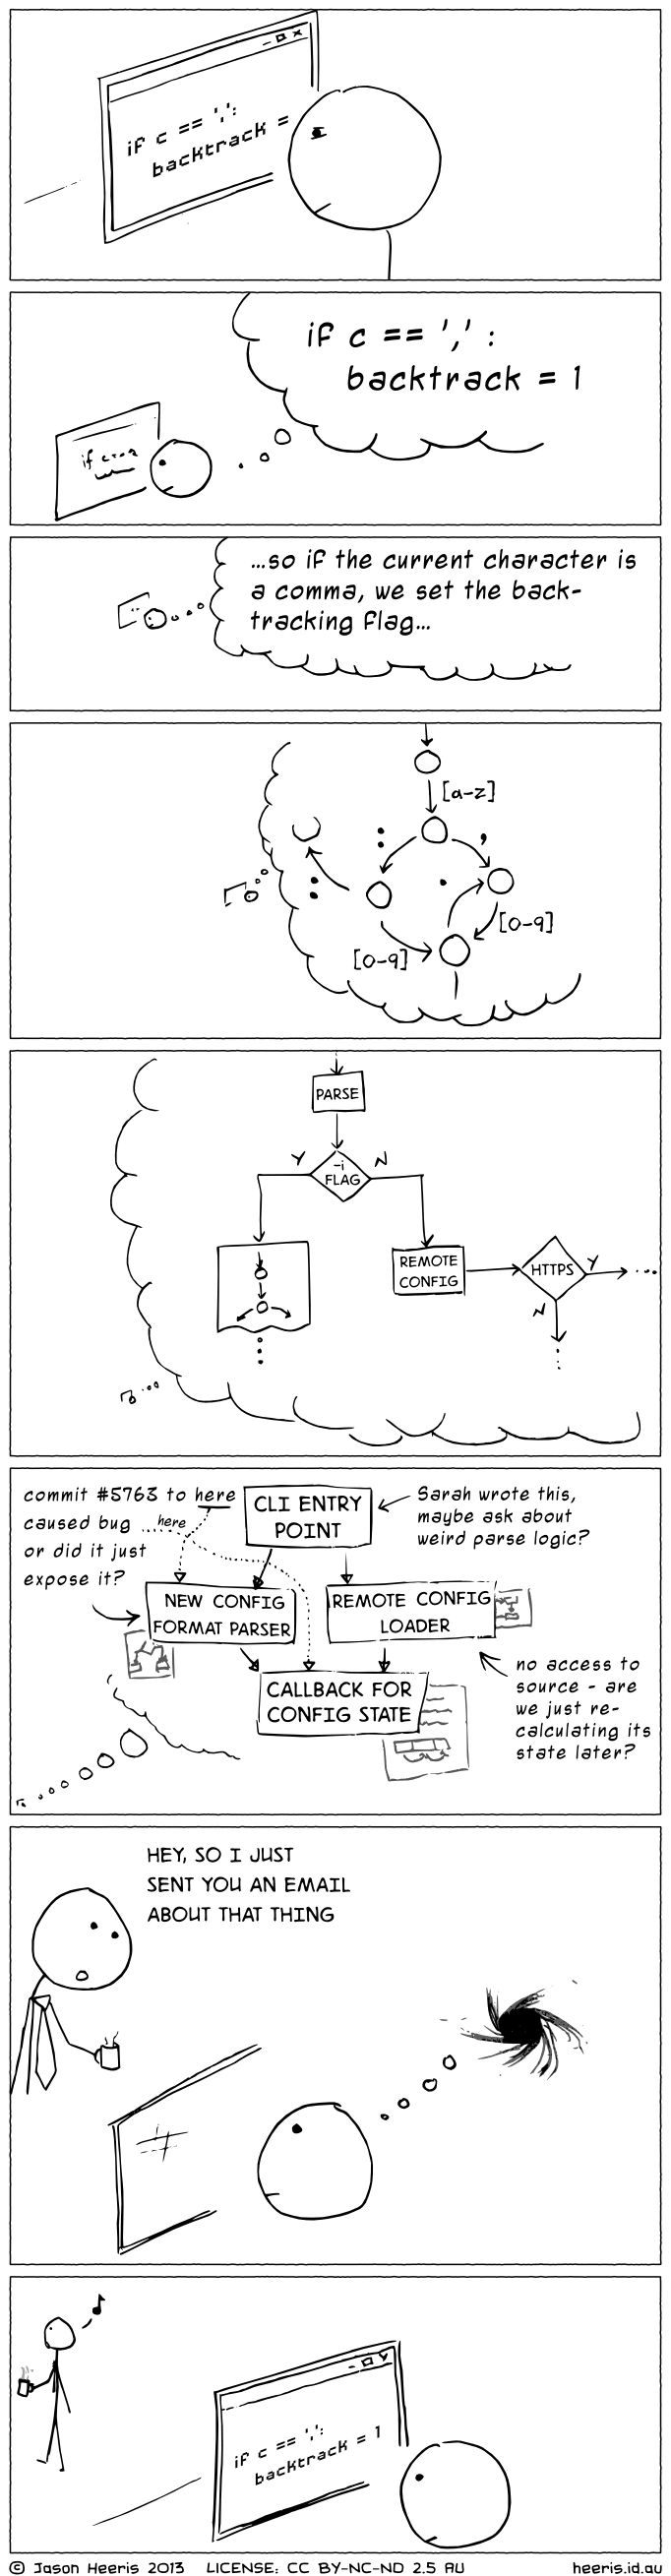 A cartoon with the first set of images showing a programmer's thought process across levels of abstraction, going rom a single if statement to how the components of the system fit together. The last pane shows him being interrupted, and that entire mental model collapsing.